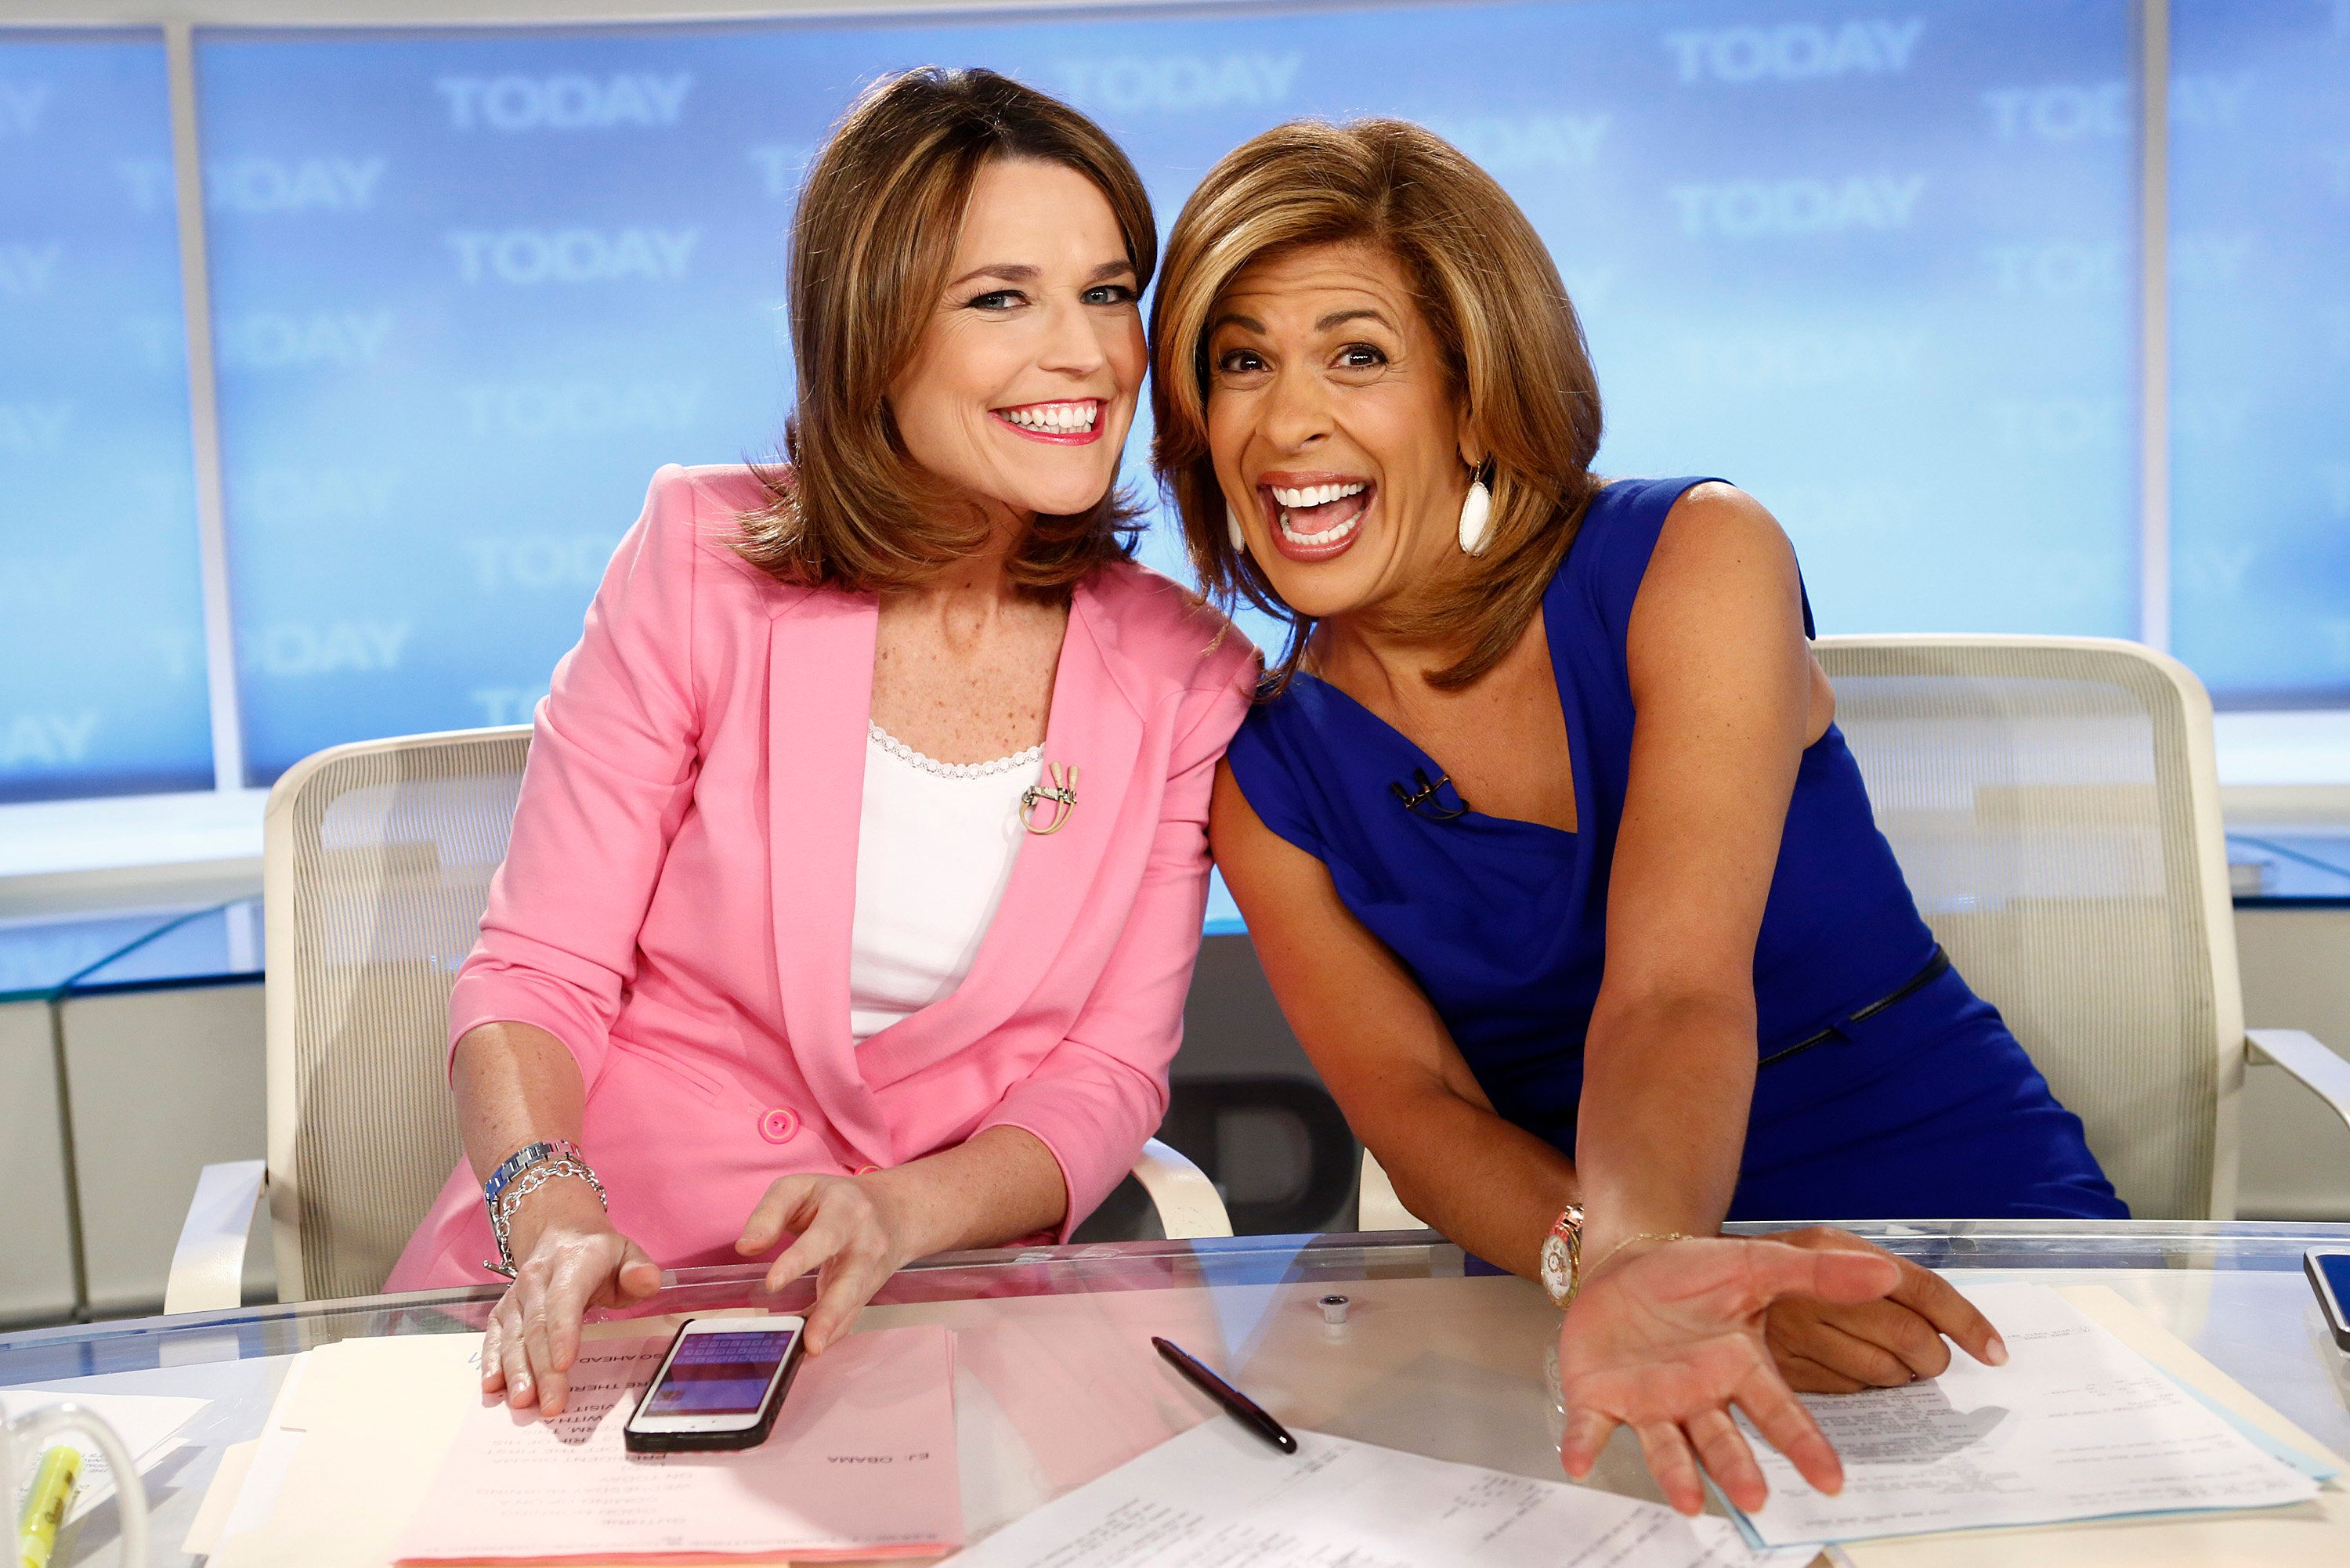 'Today' show winning ratings battle after Matt Lauer's firing